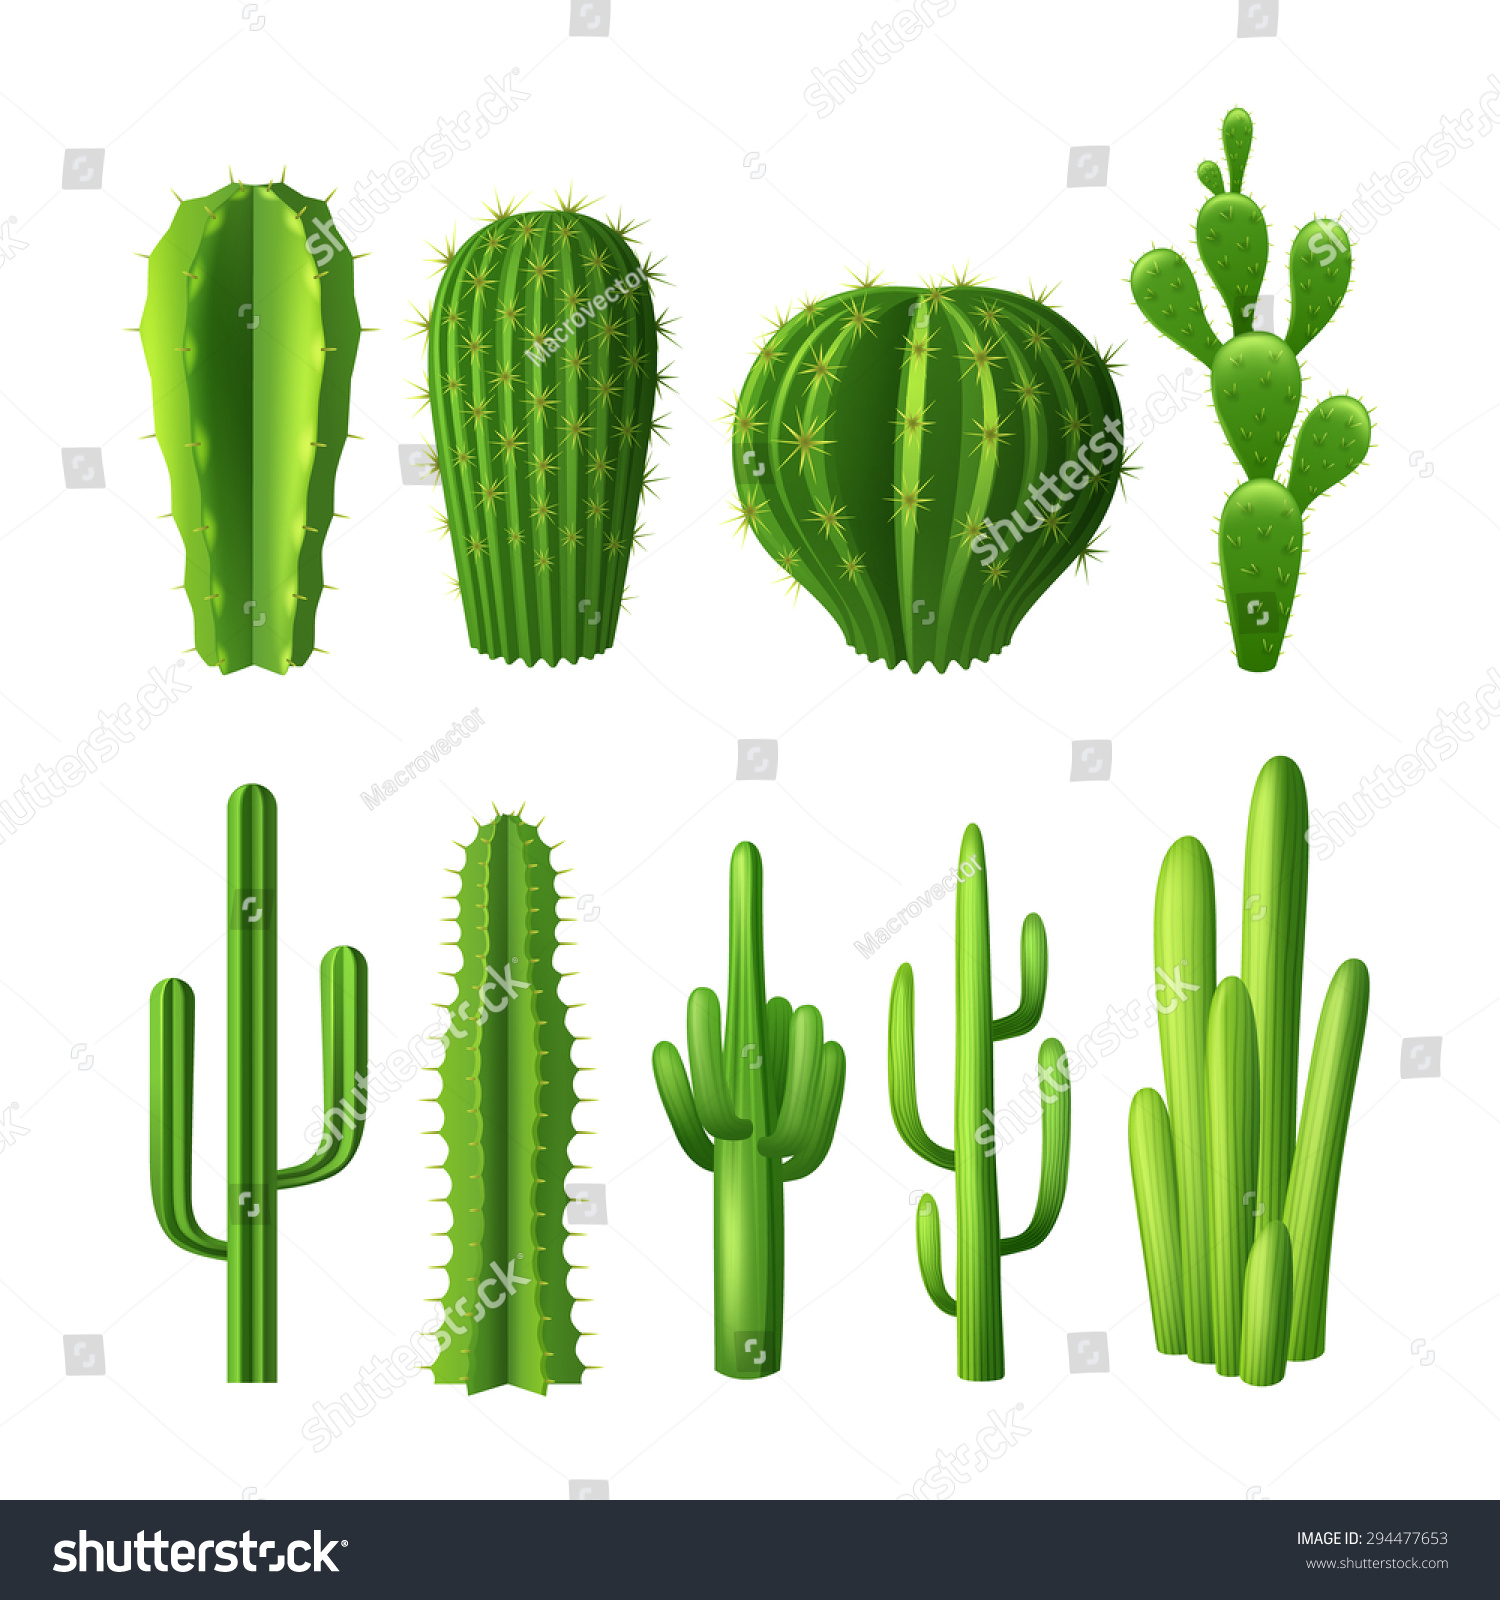 different types cactus plants realistic decorative stock vector 294477653 shutterstock. Black Bedroom Furniture Sets. Home Design Ideas